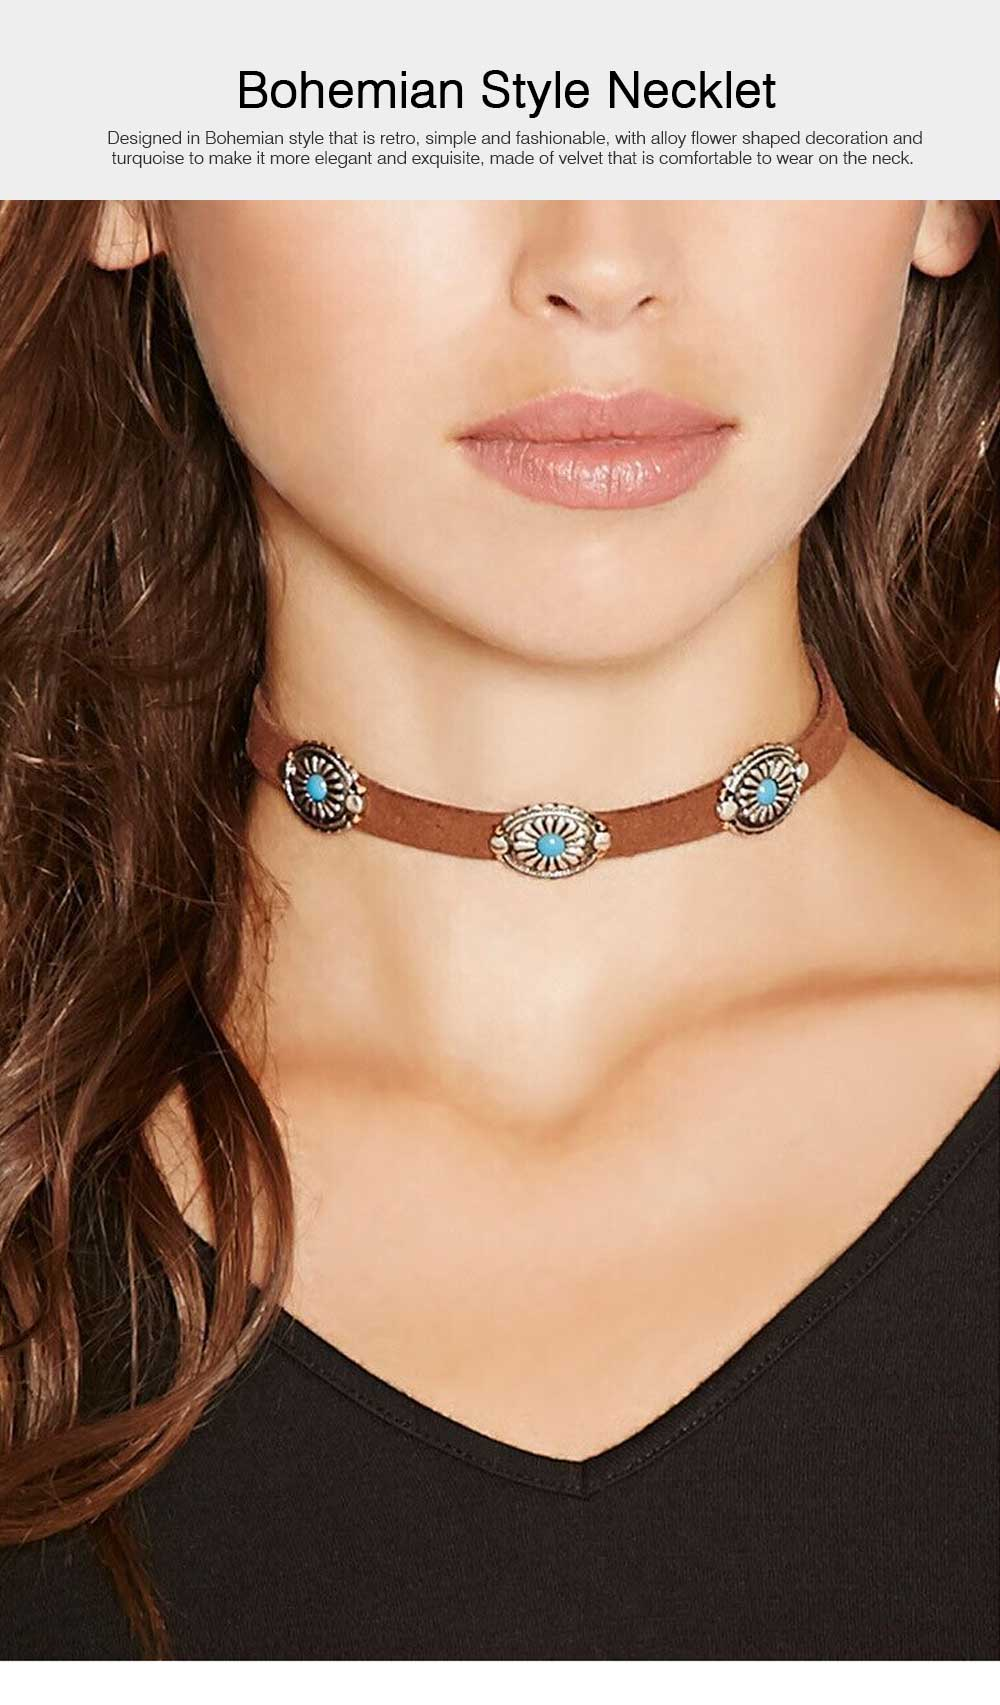 Bohemian Style Necklace with Turquoise and Alloy Decoration, Retro Simple Style Necklet Neck Accessory Ornament 0